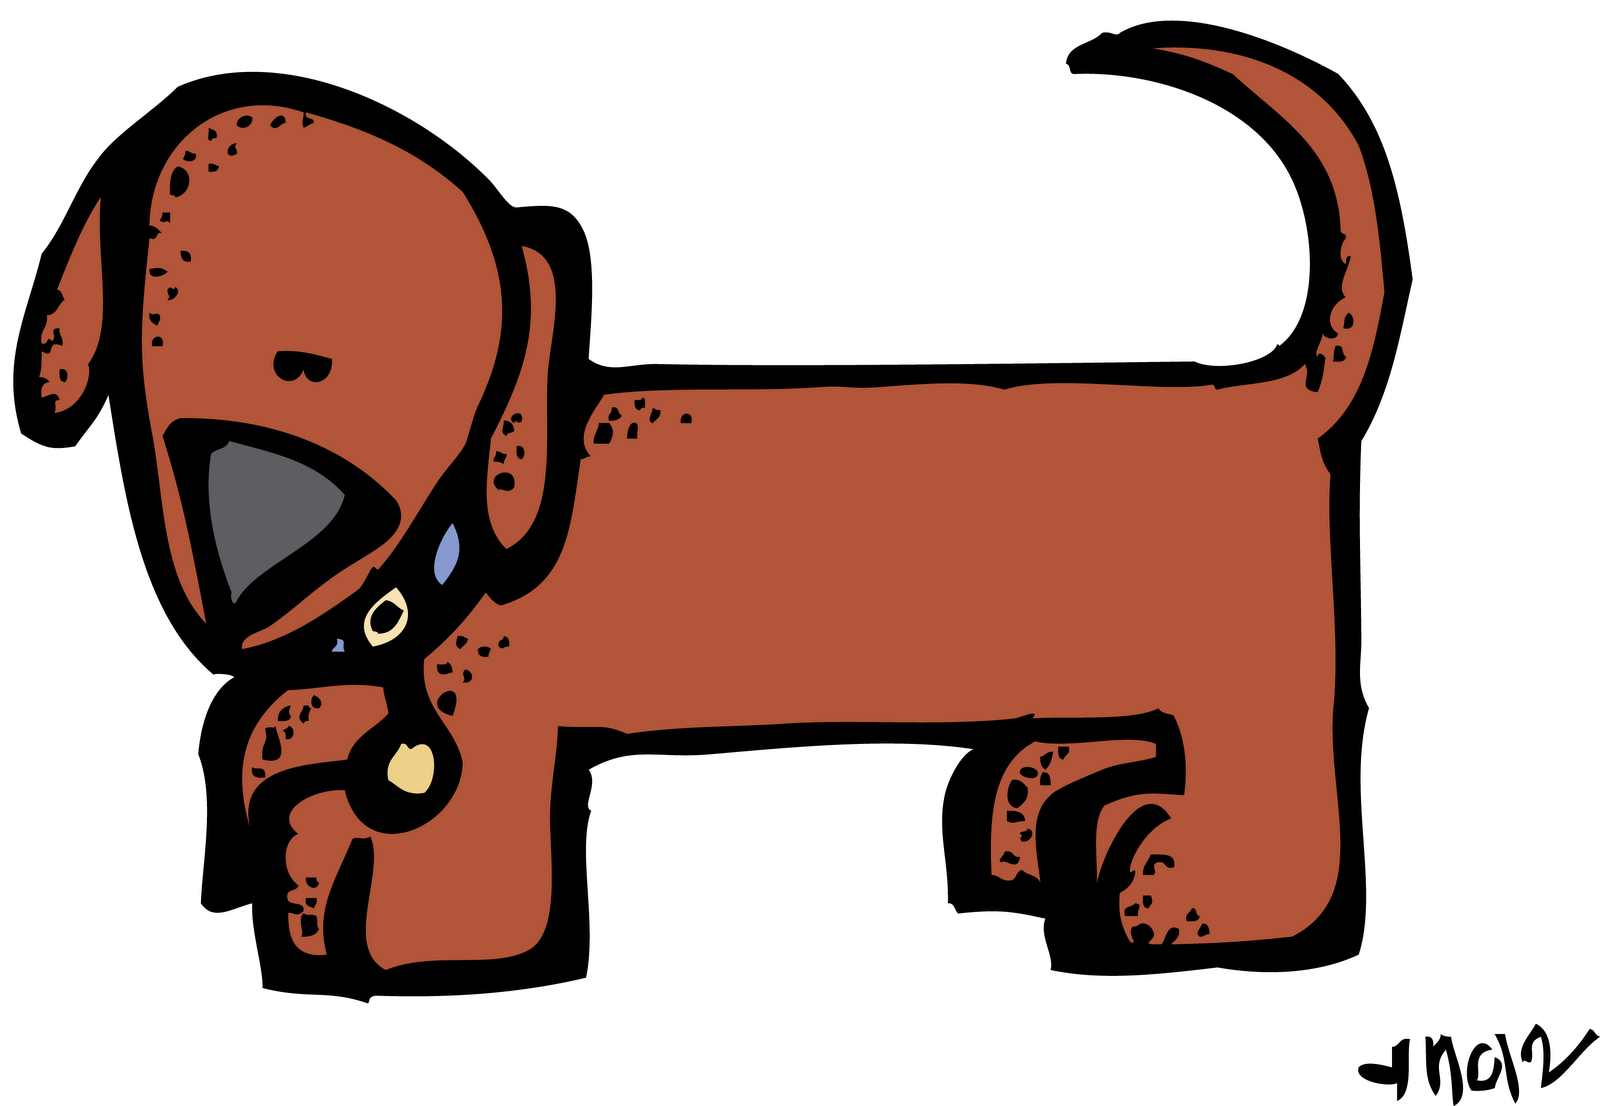 Wiener dog clipart image stock MelonHeadz: A request from Jennifer image stock